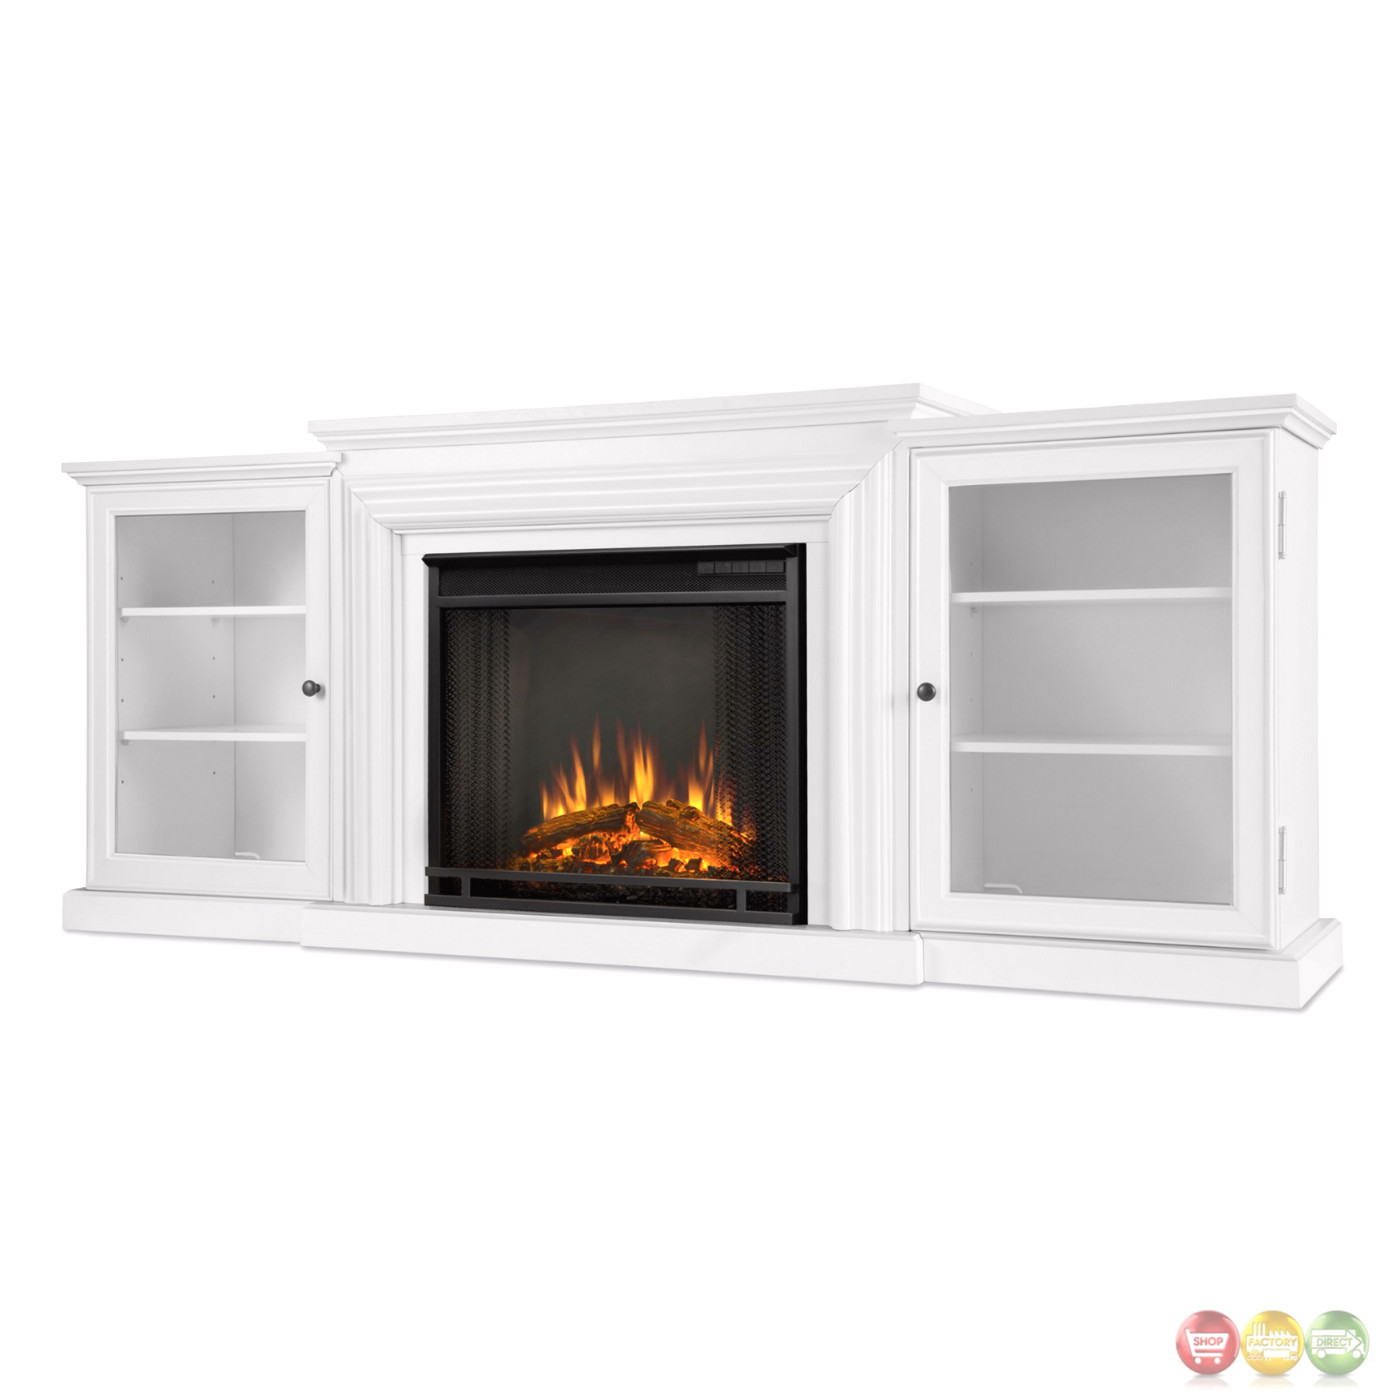 Frederick Entertainment Center Electric Fireplace In White 4700btu 72x30